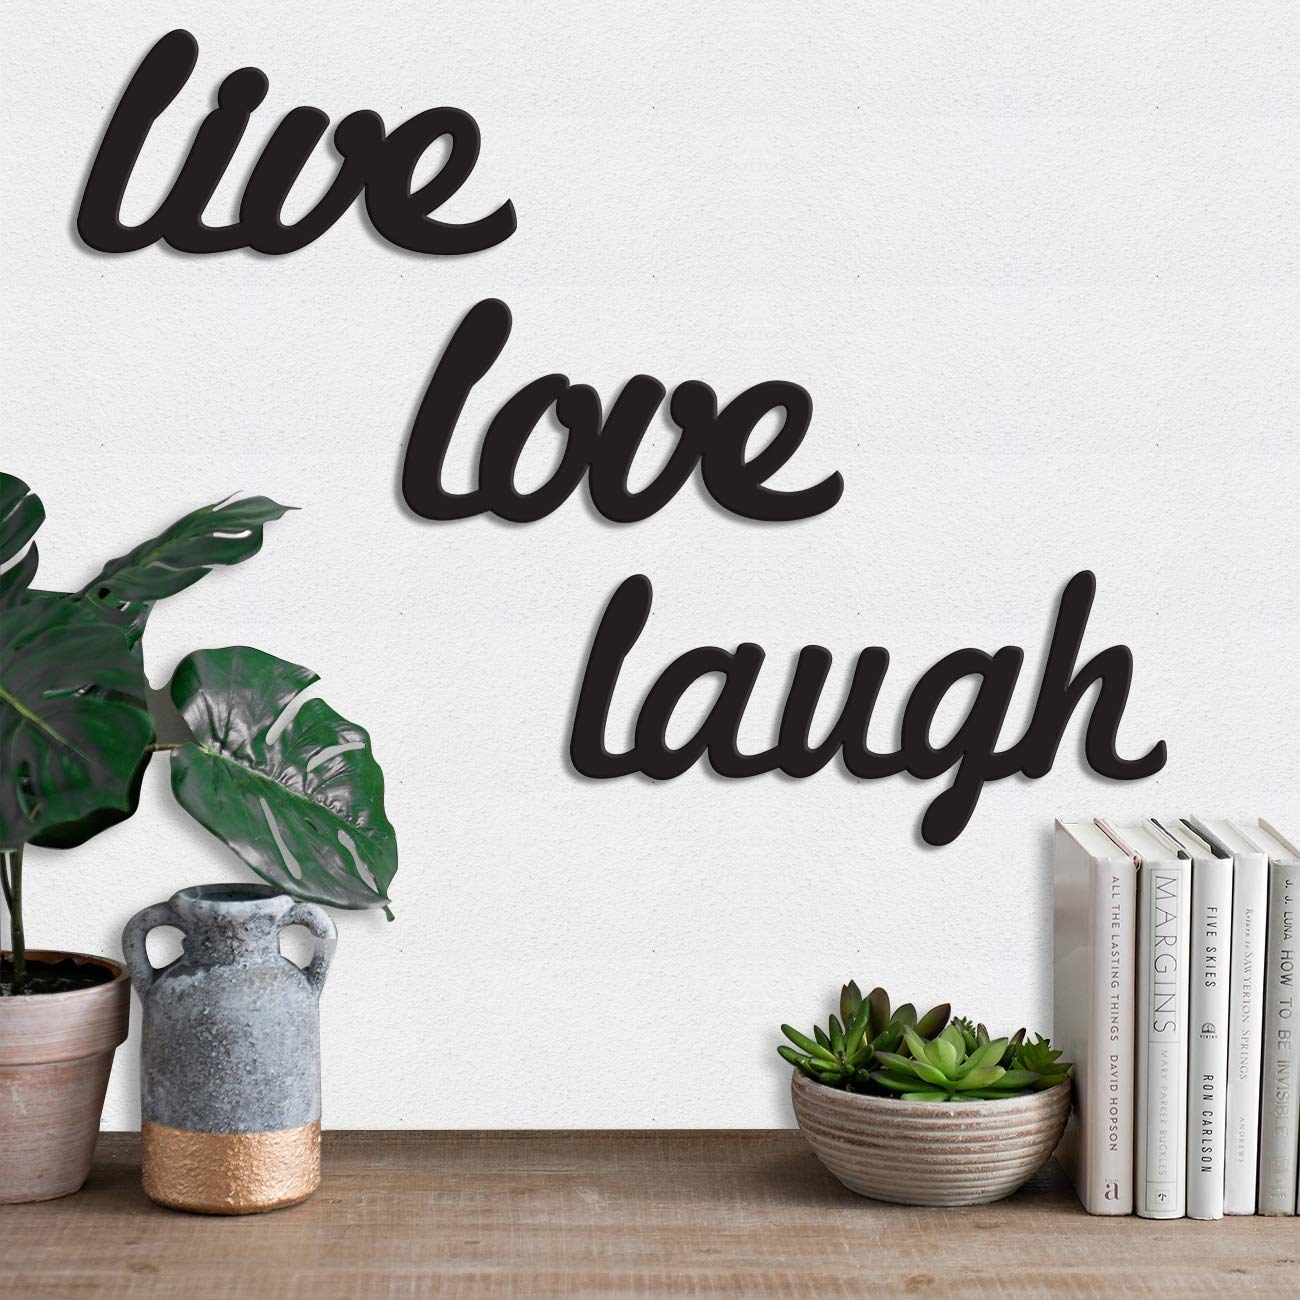 A wall plaque that says Live Love Laugh